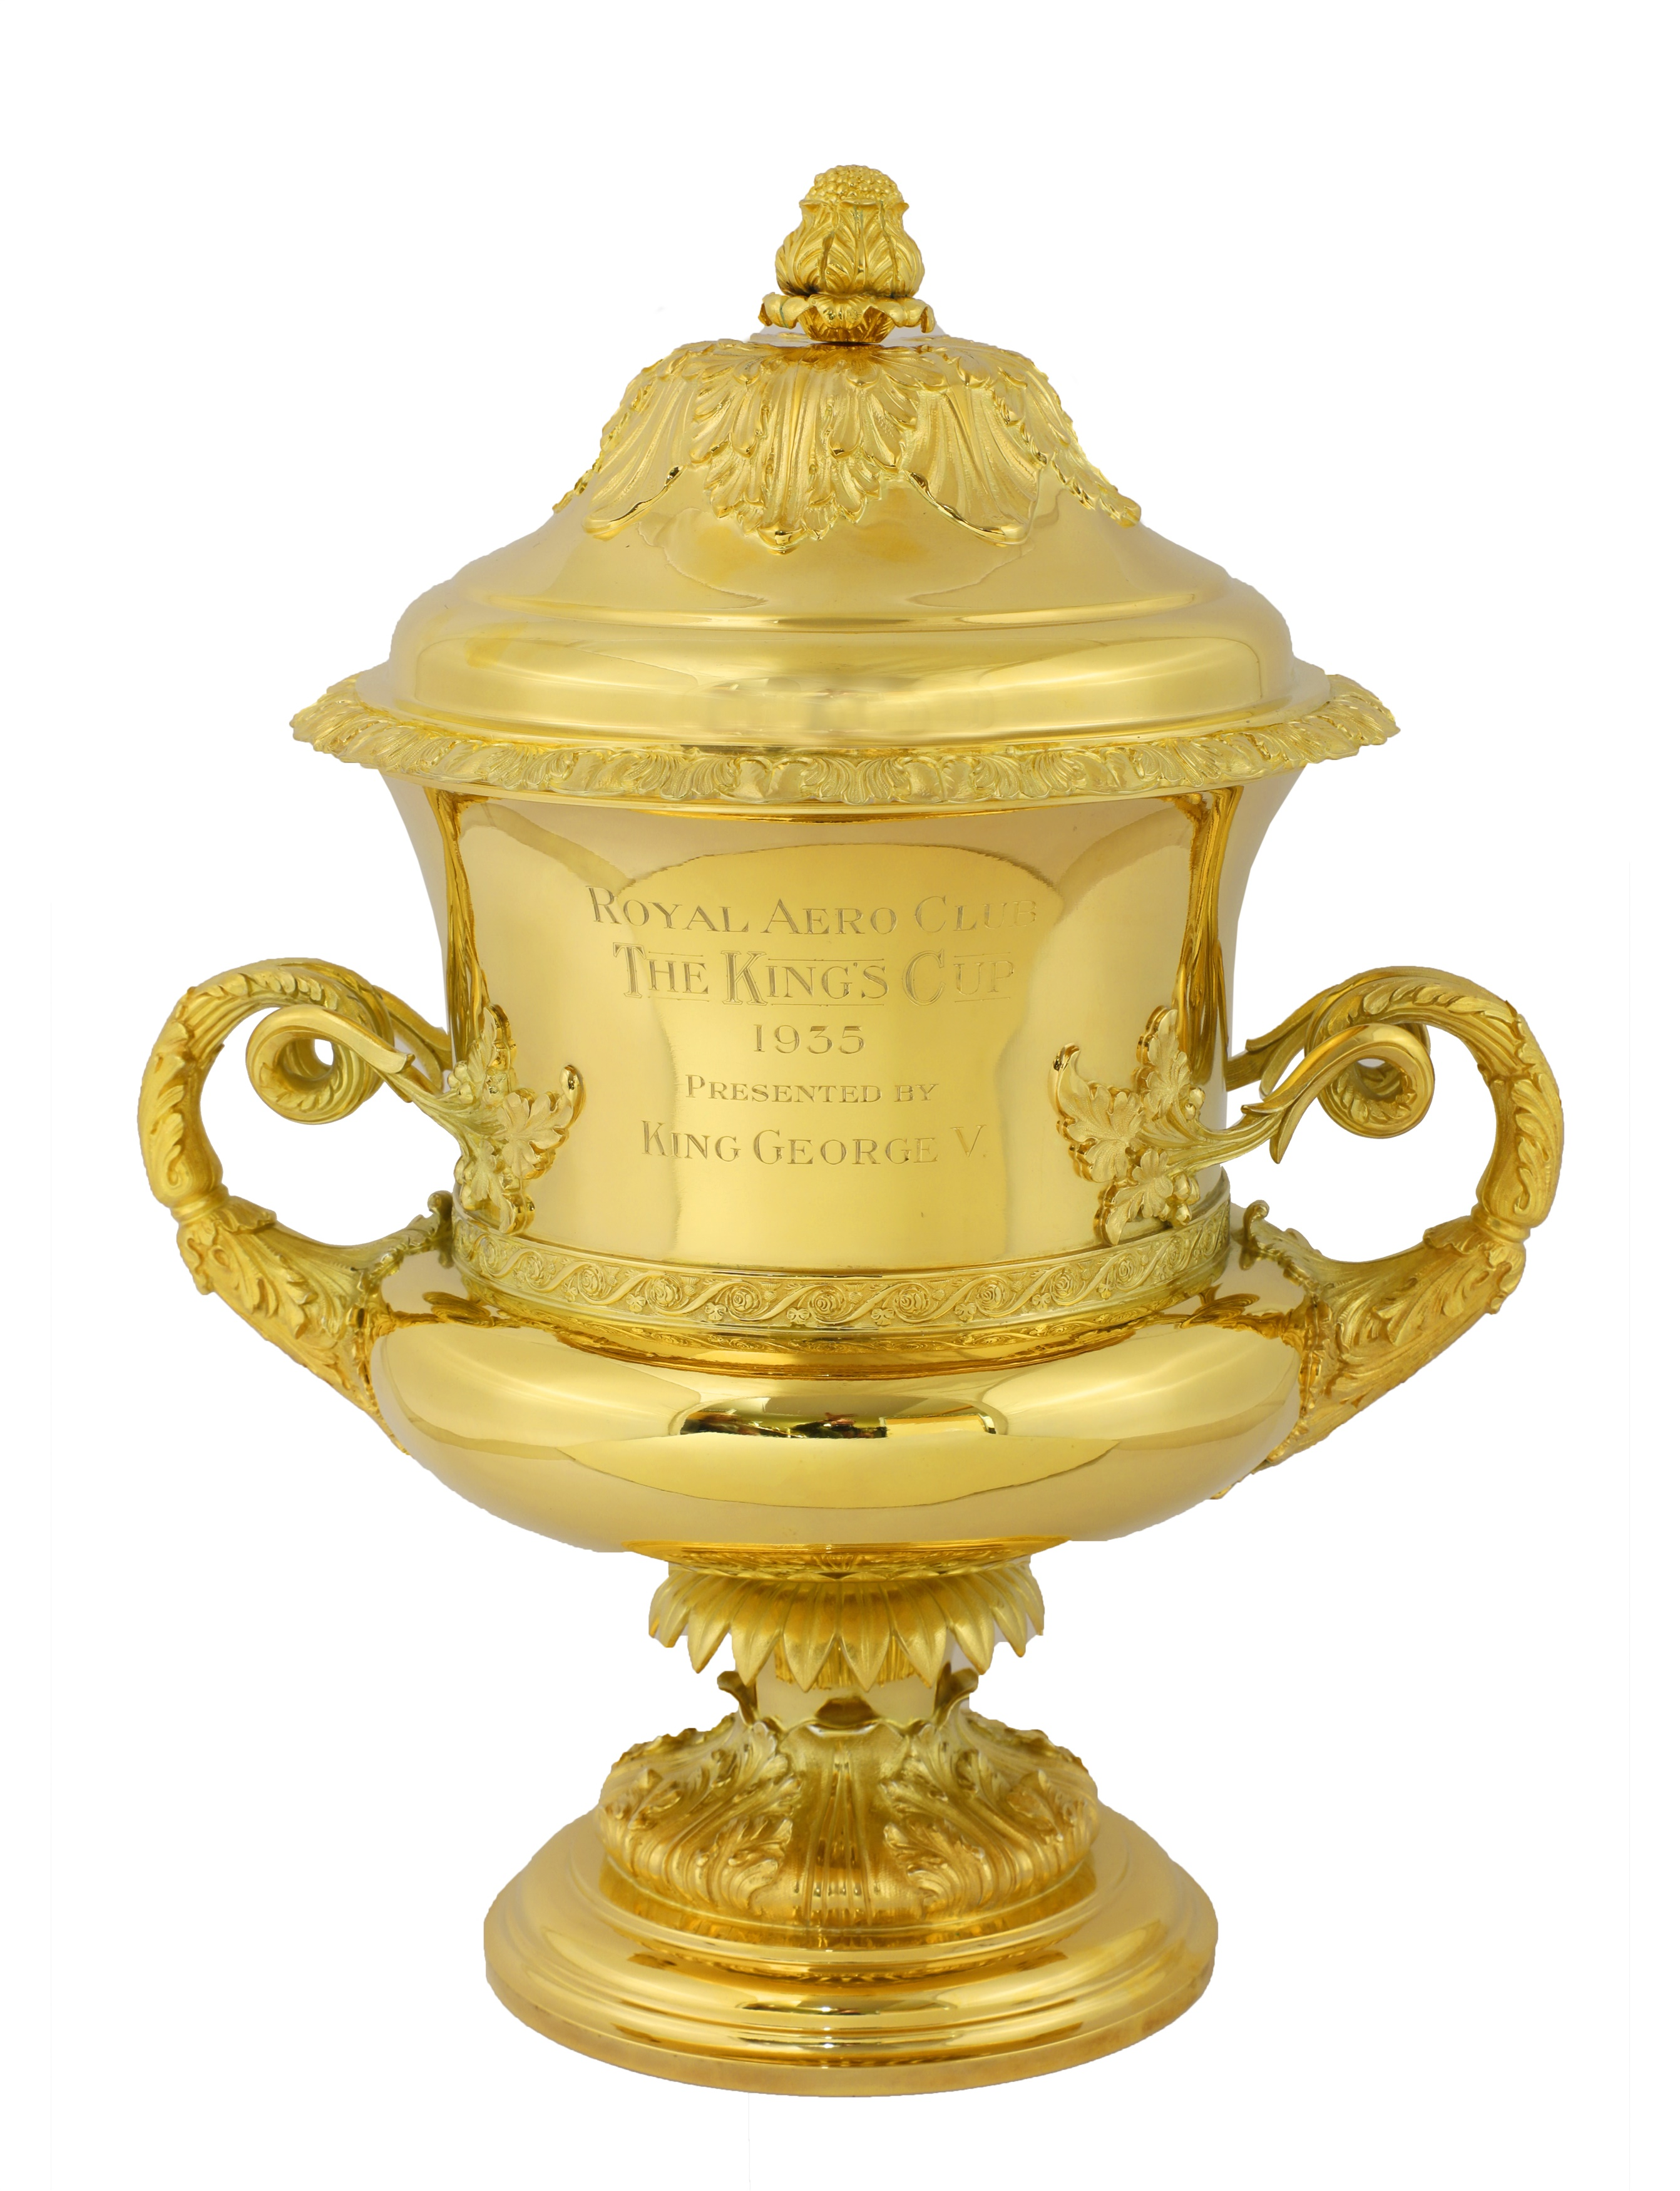 A silver gilt flying trophy 'The King's Cup'